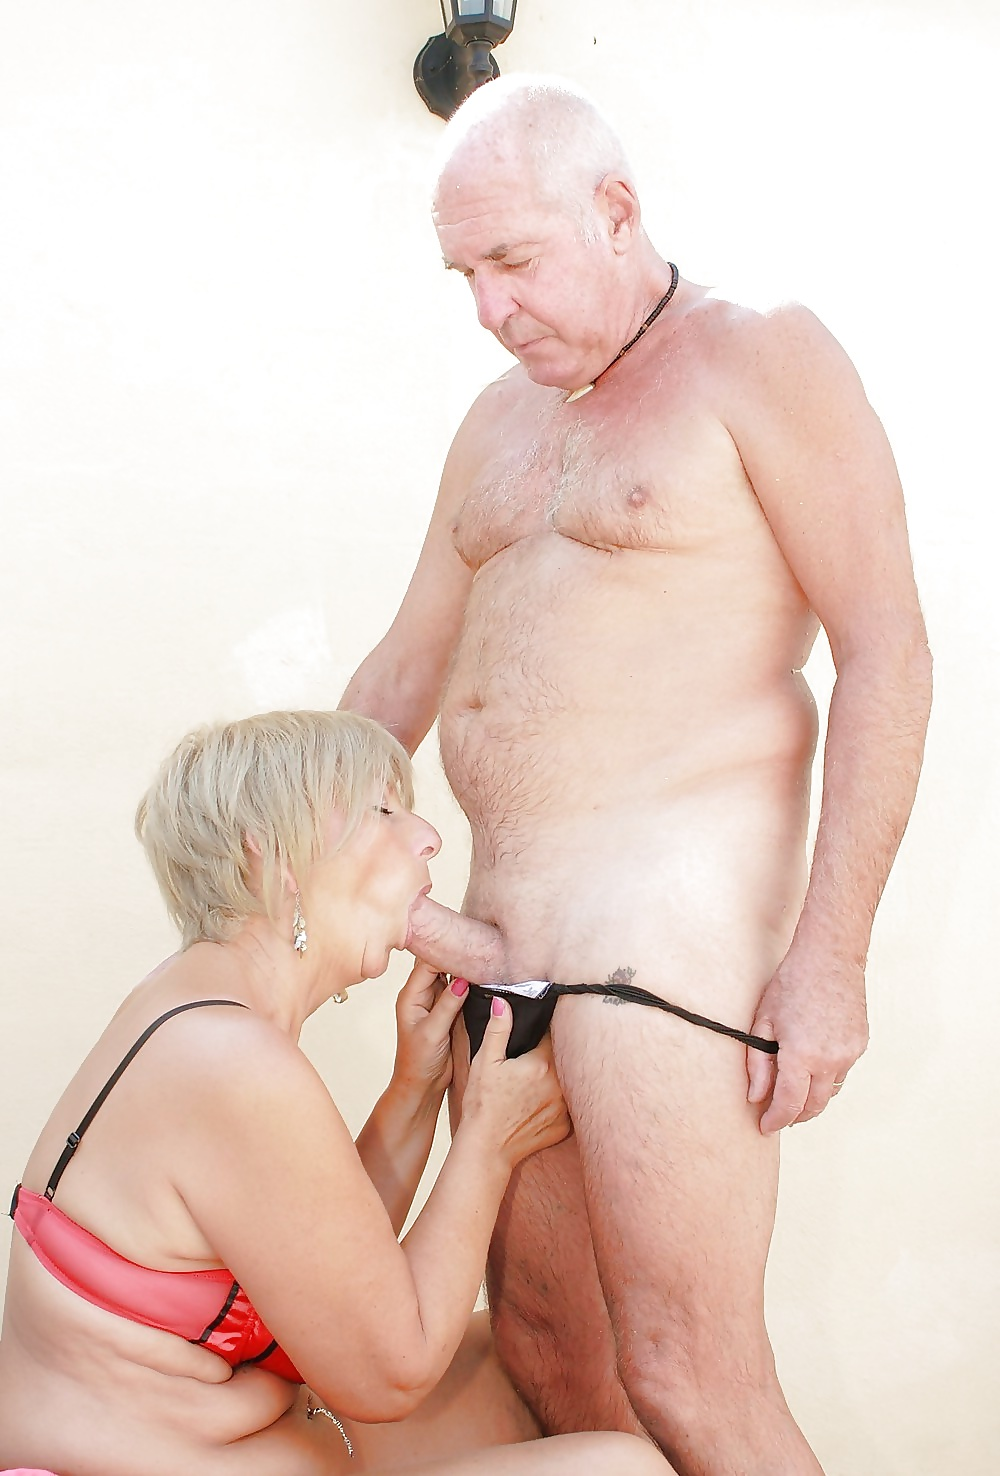 Naked granny and grandpa, old vs young free video